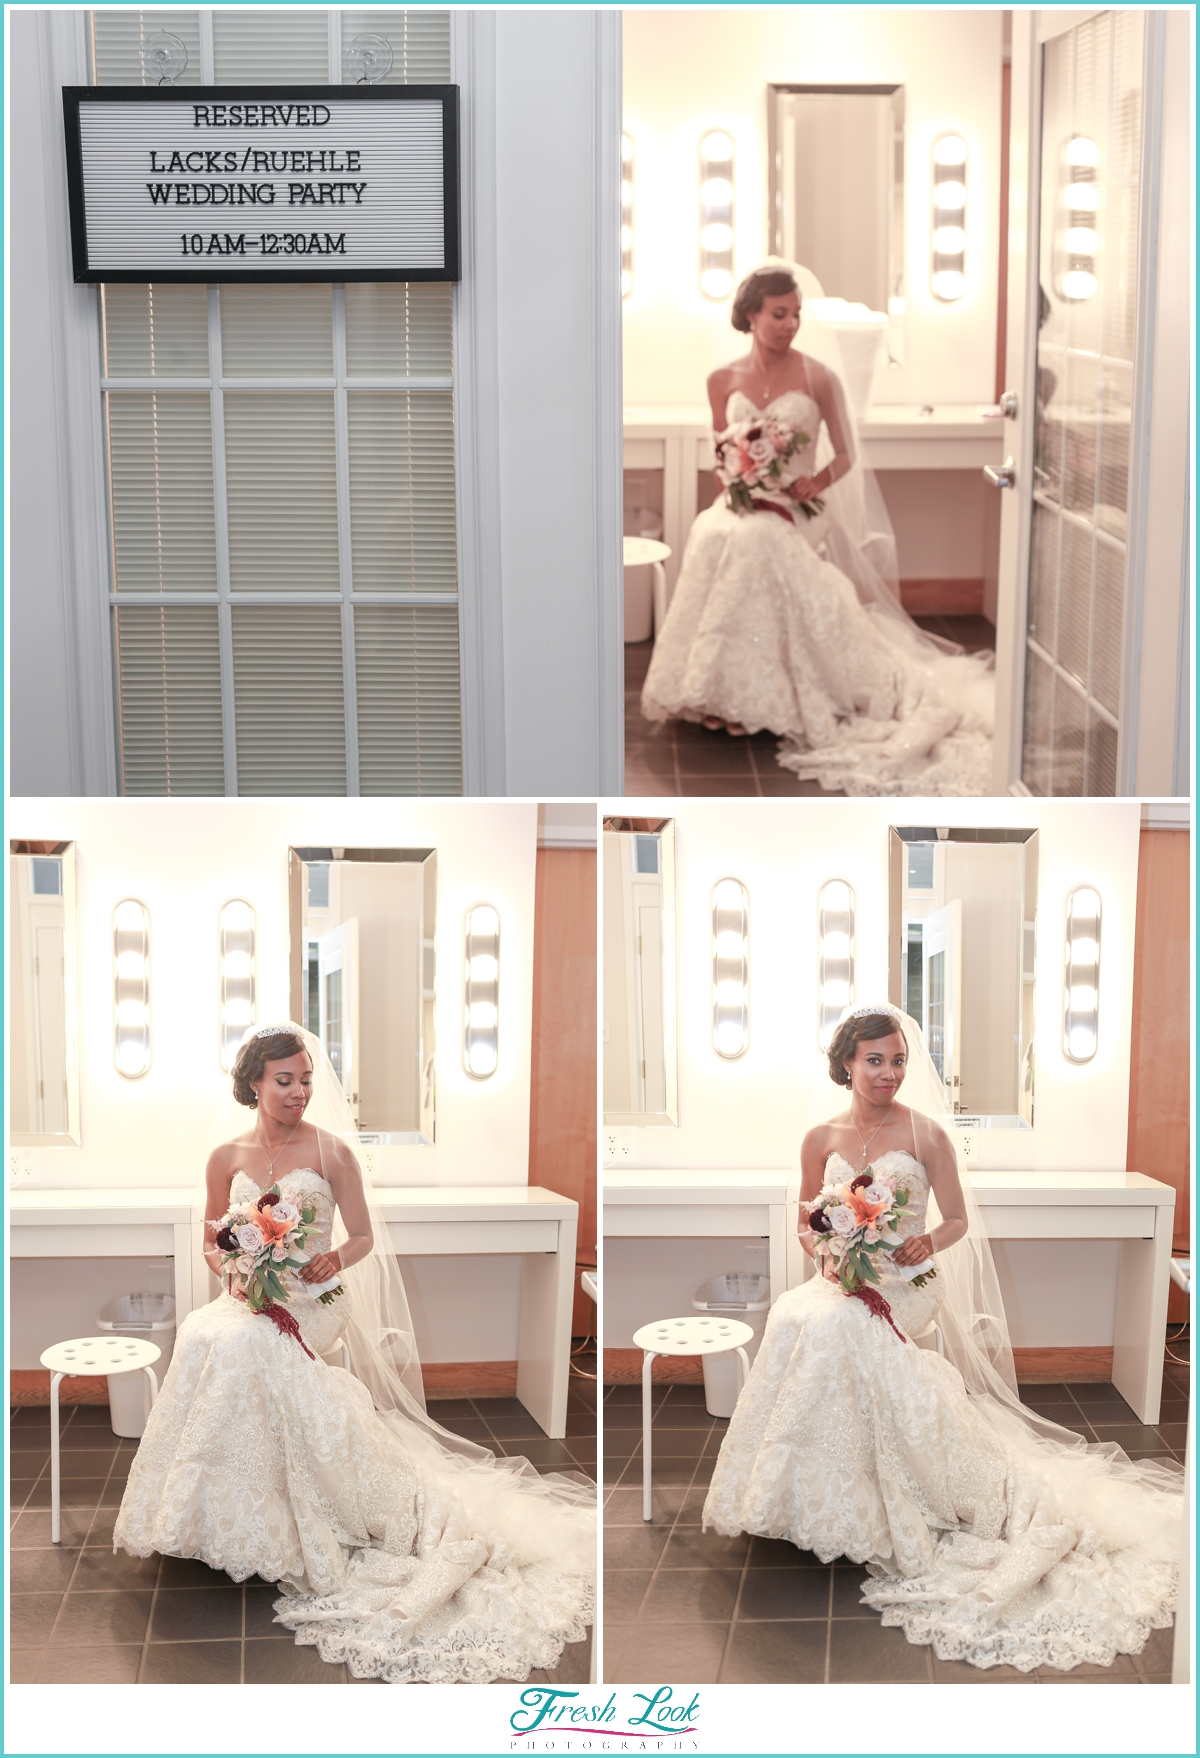 Bride reflecting before the wedding